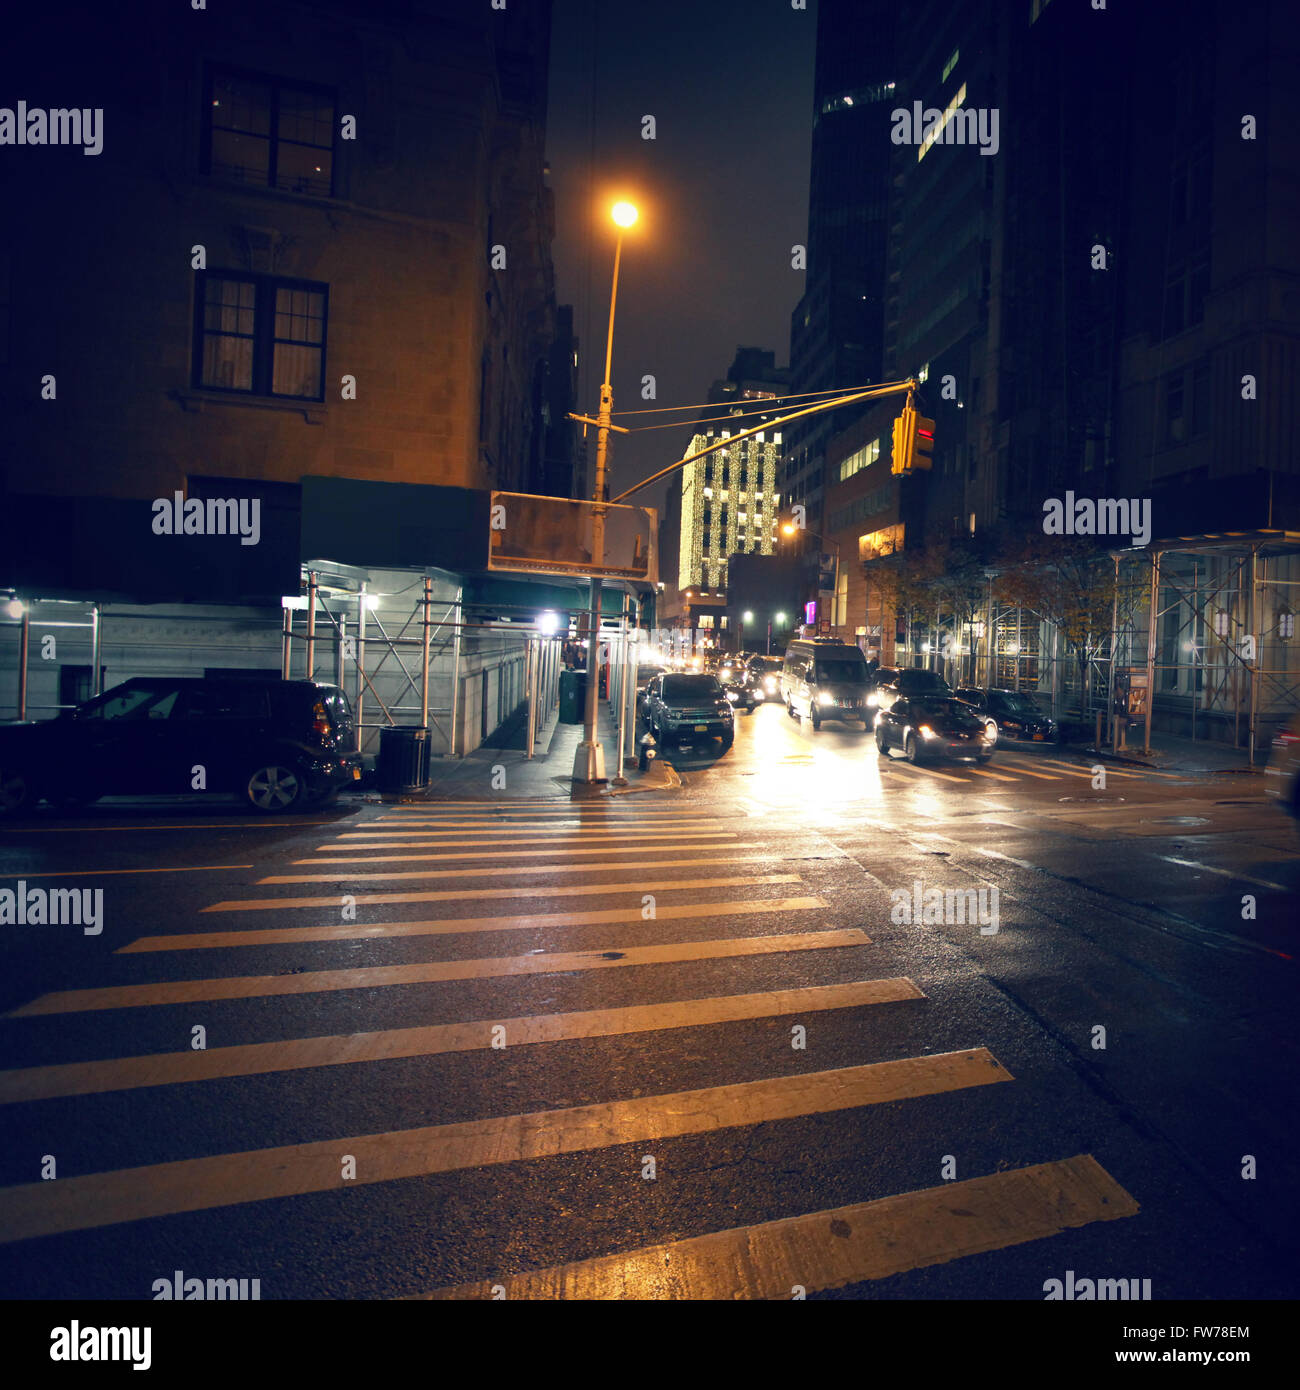 New York crosswalk at night - Stock Image